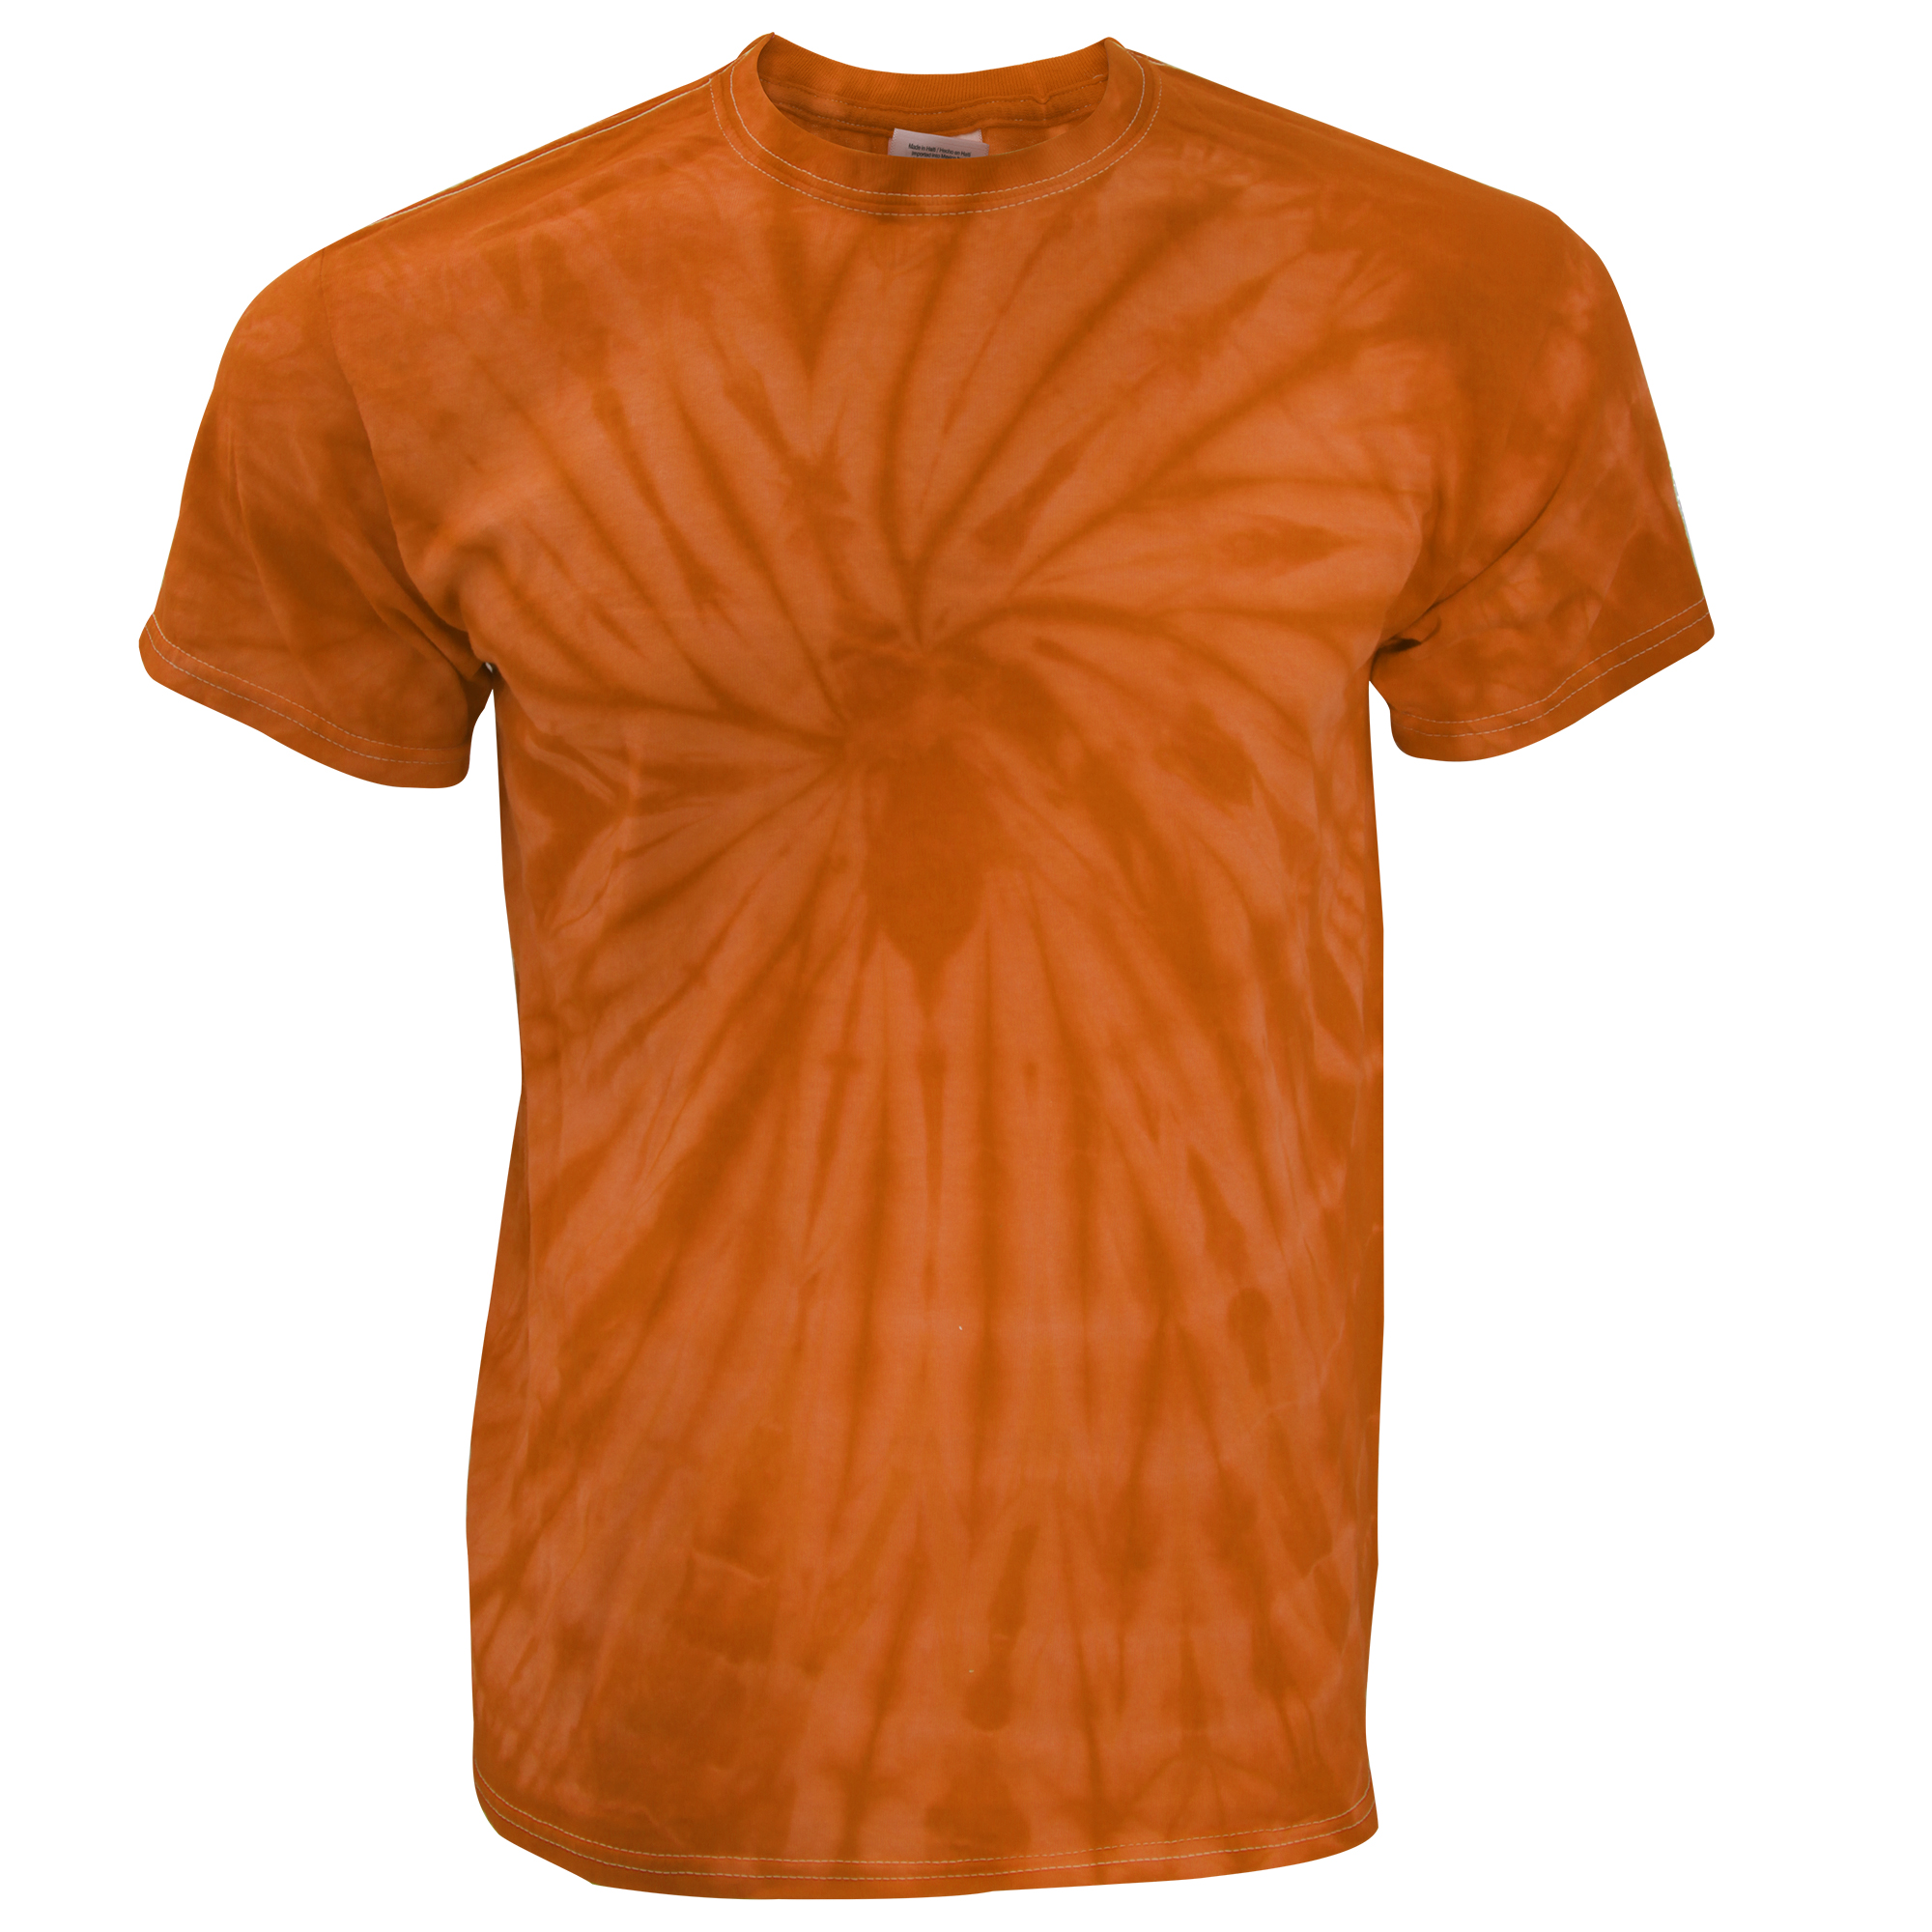 Tduk mens short sleeve spiral tie dye t shirt ebay for Nike tie dye shirt and shorts